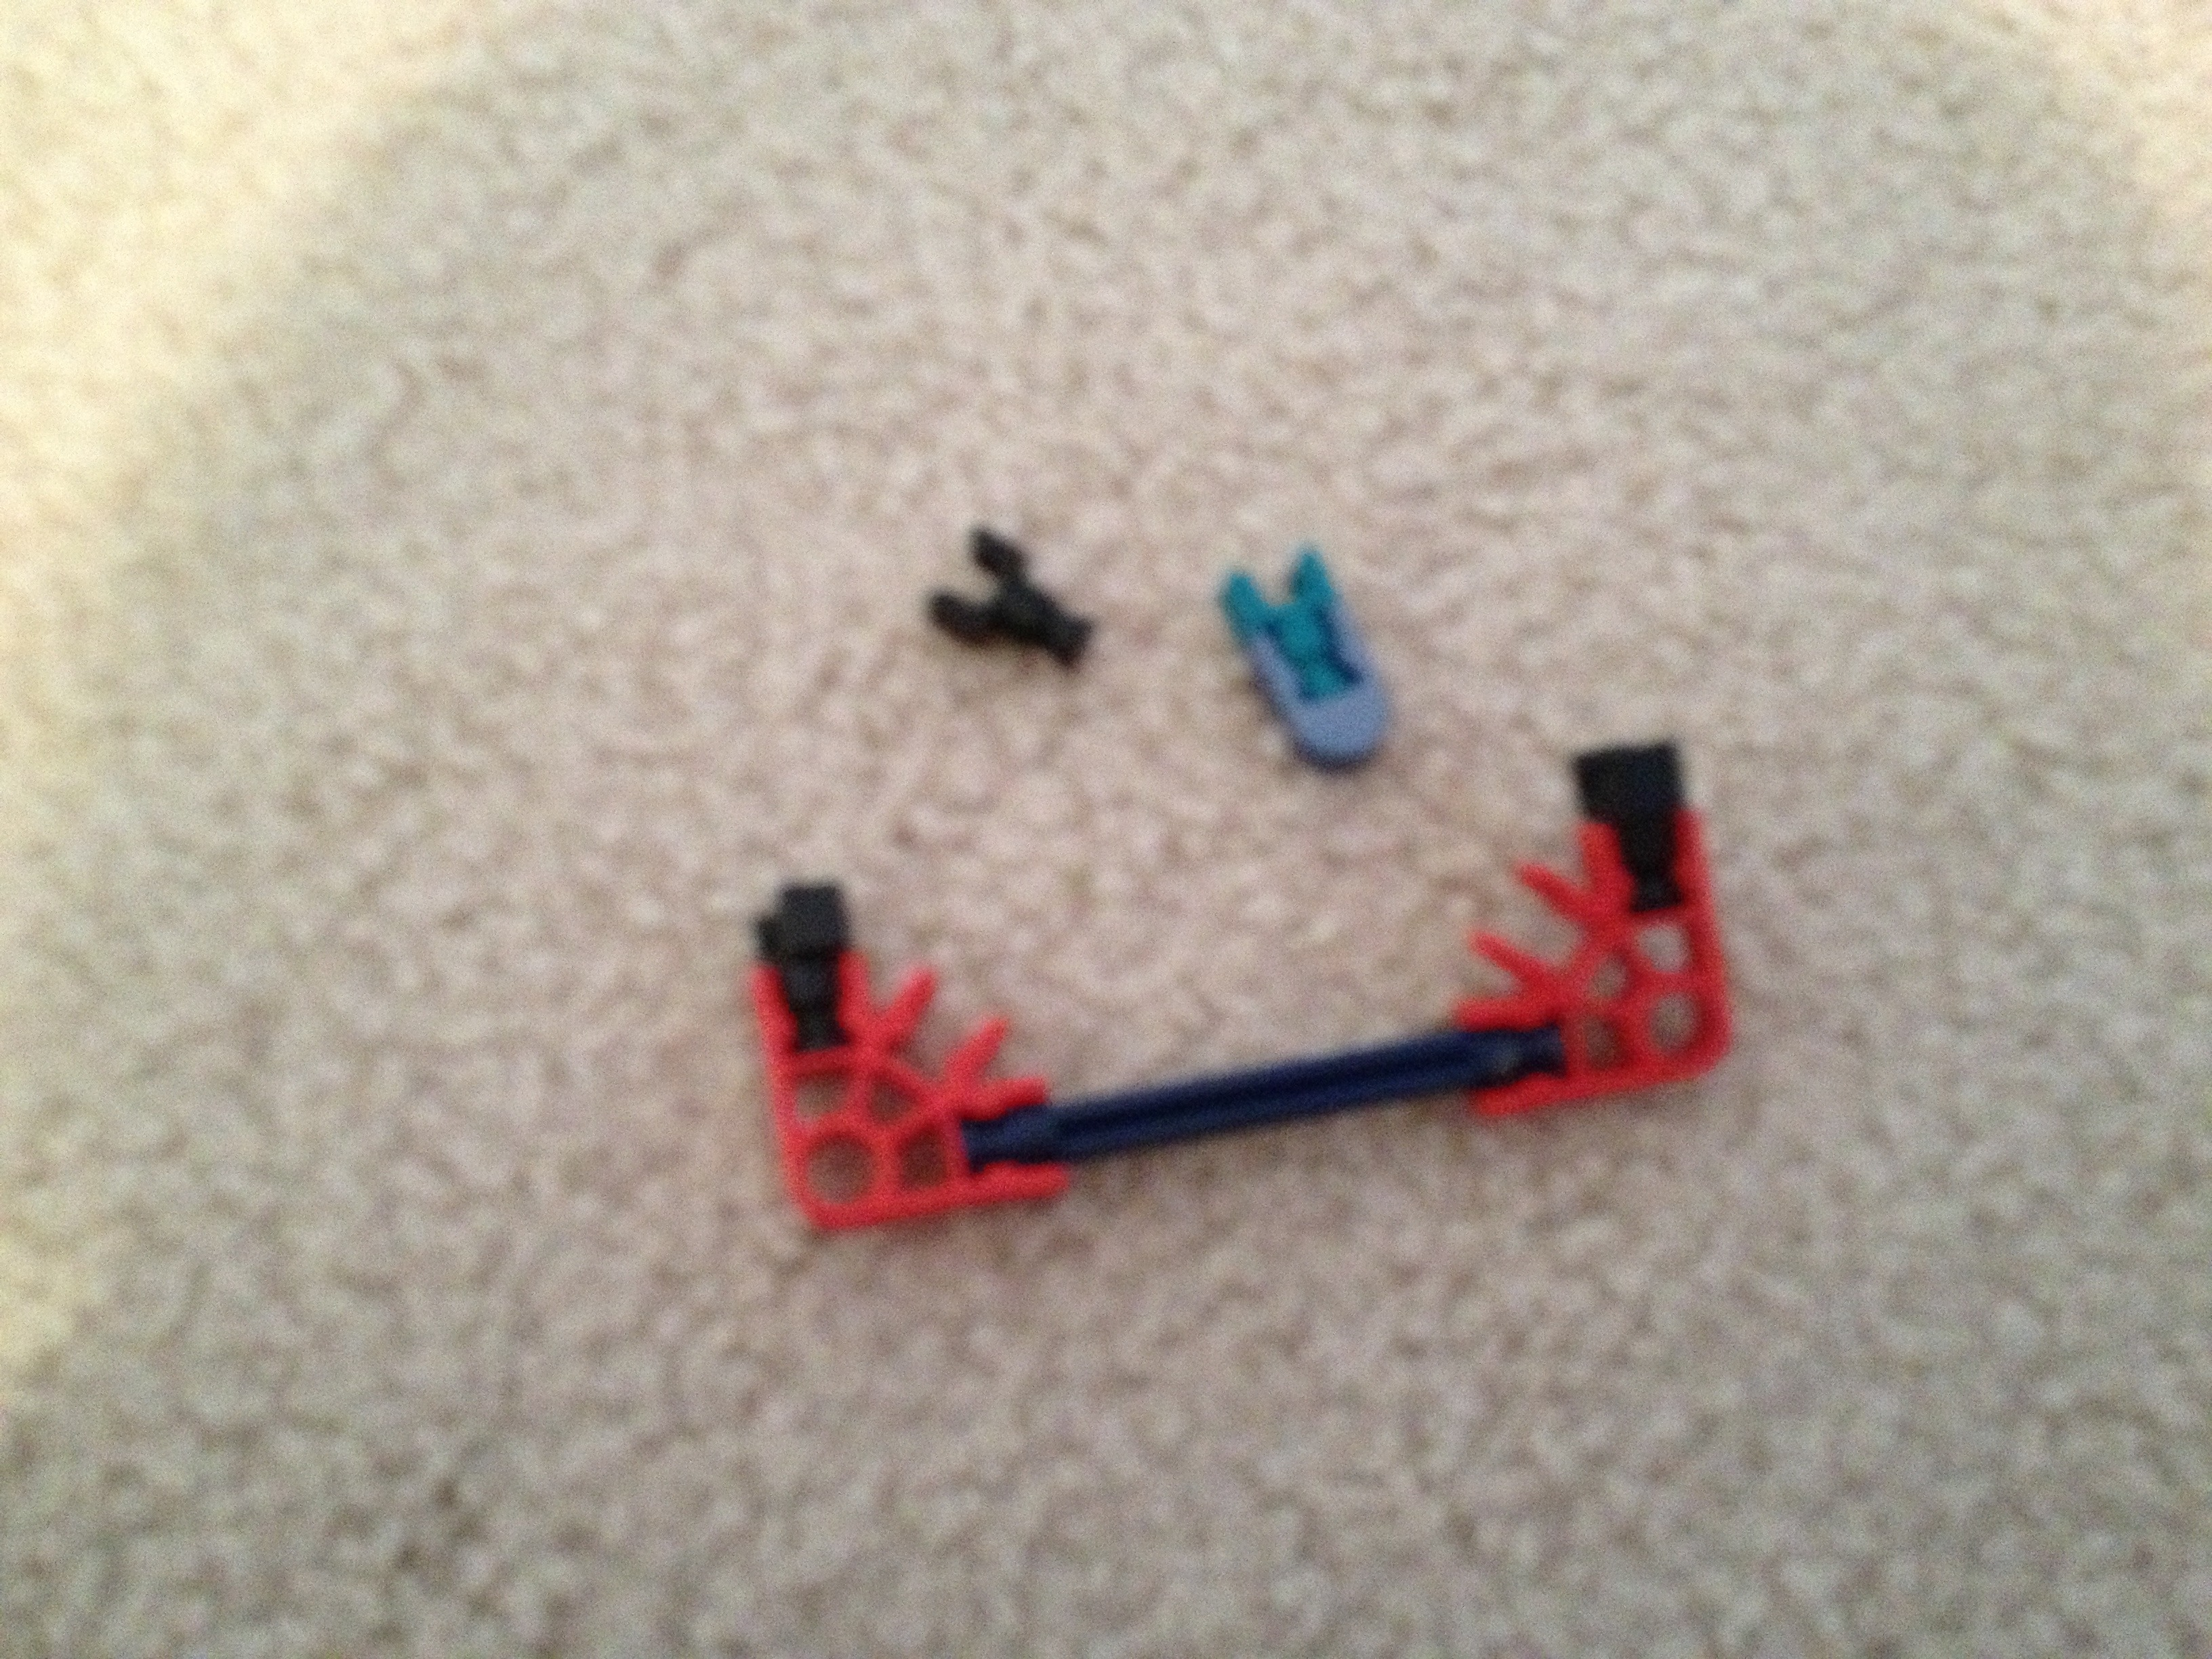 Picture of Trigger and Trigger Guard